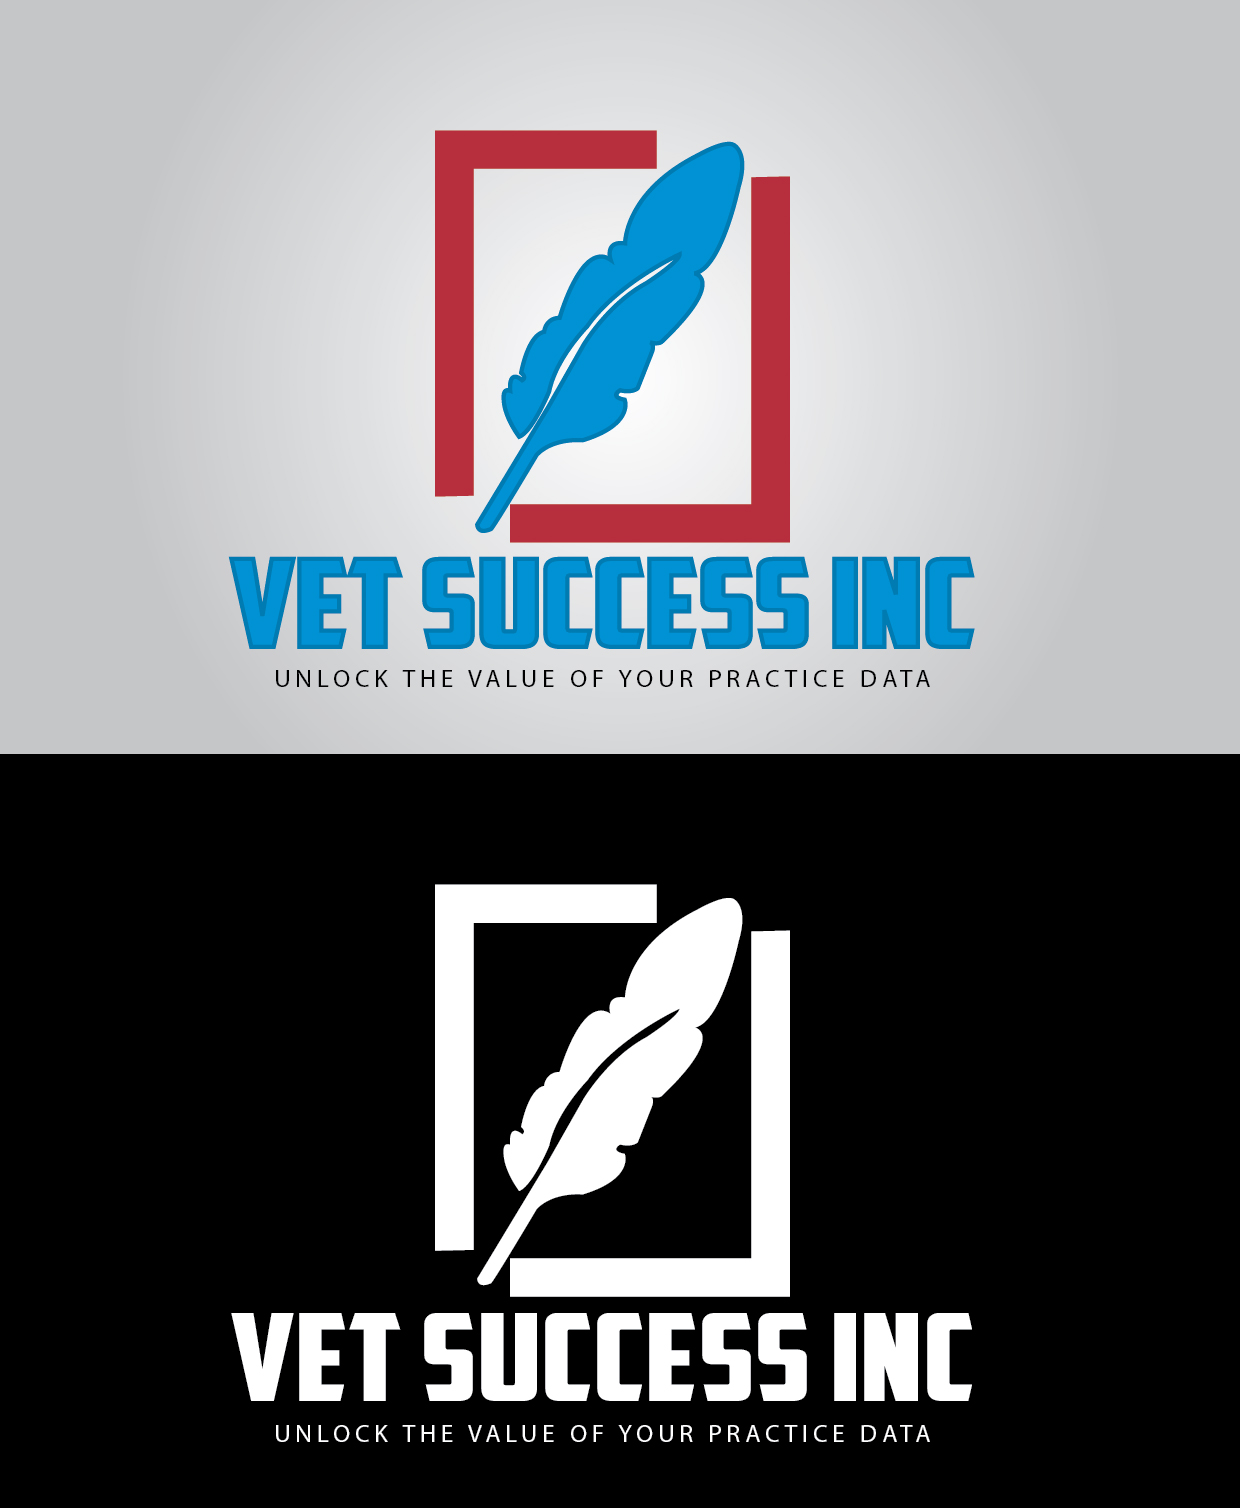 Logo Design by mediaproductionart - Entry No. 97 in the Logo Design Contest Imaginative Logo Design for Vet Success Inc..